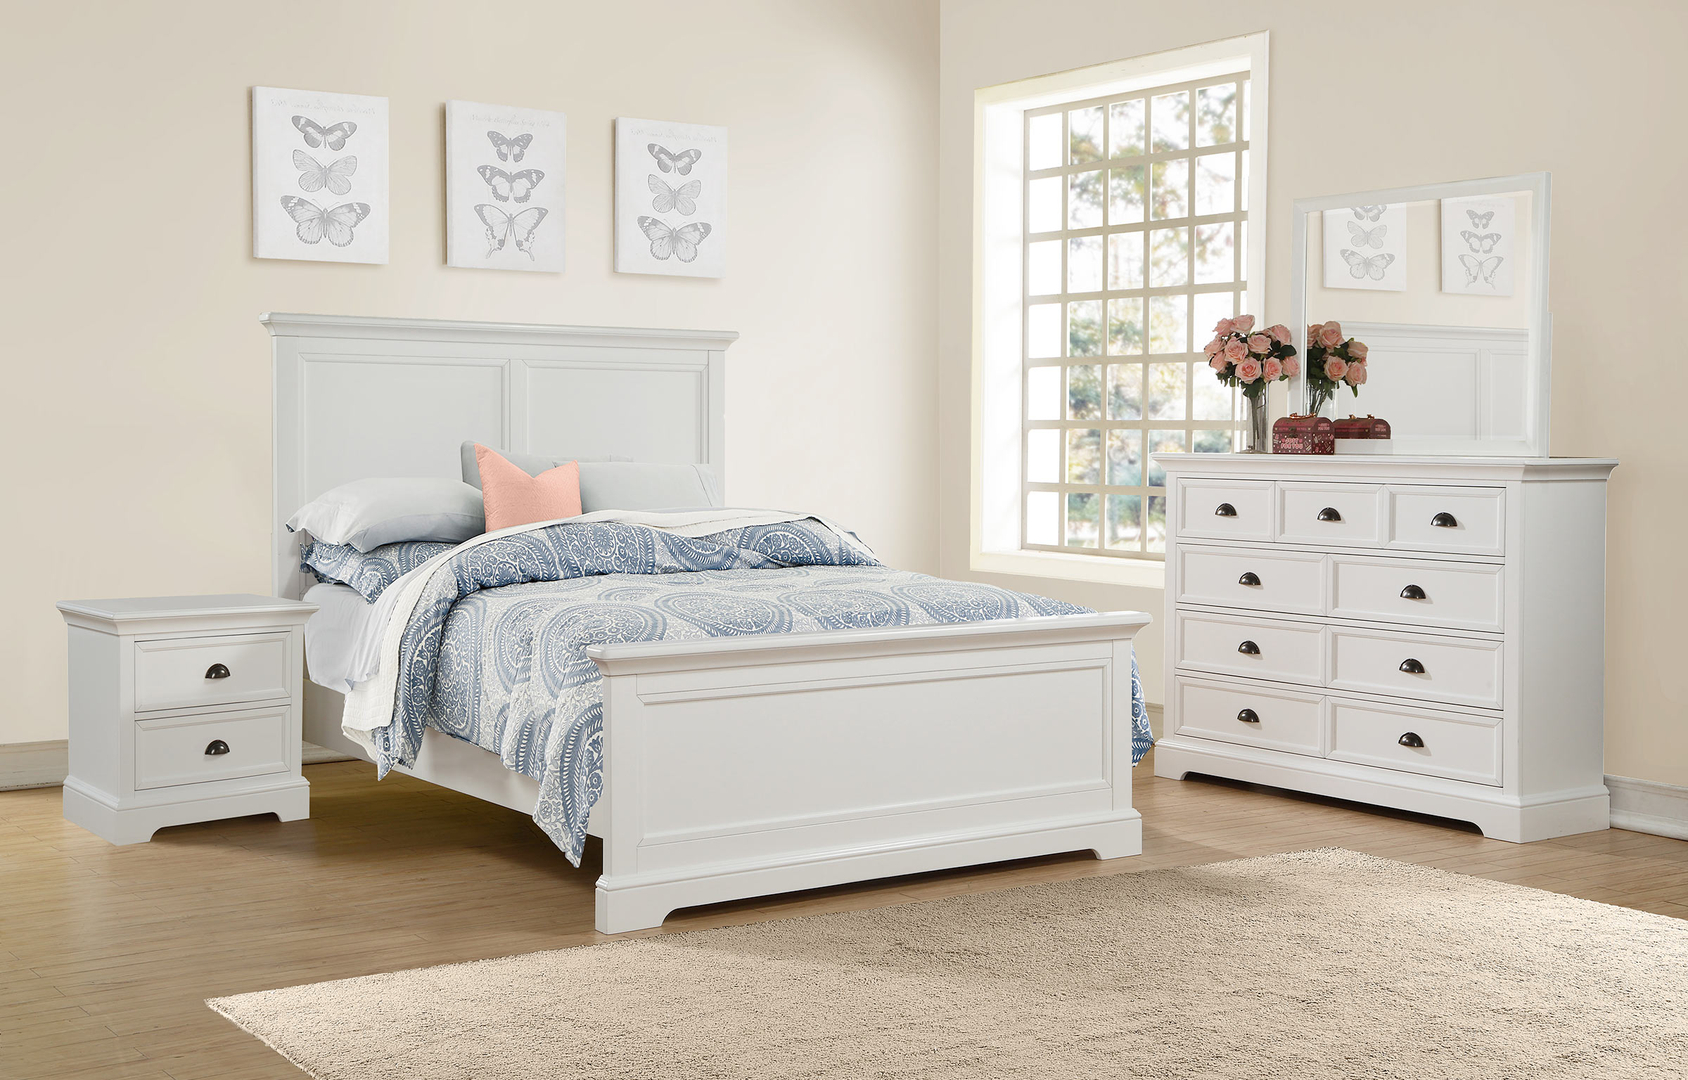 Colony House Furniture - Online